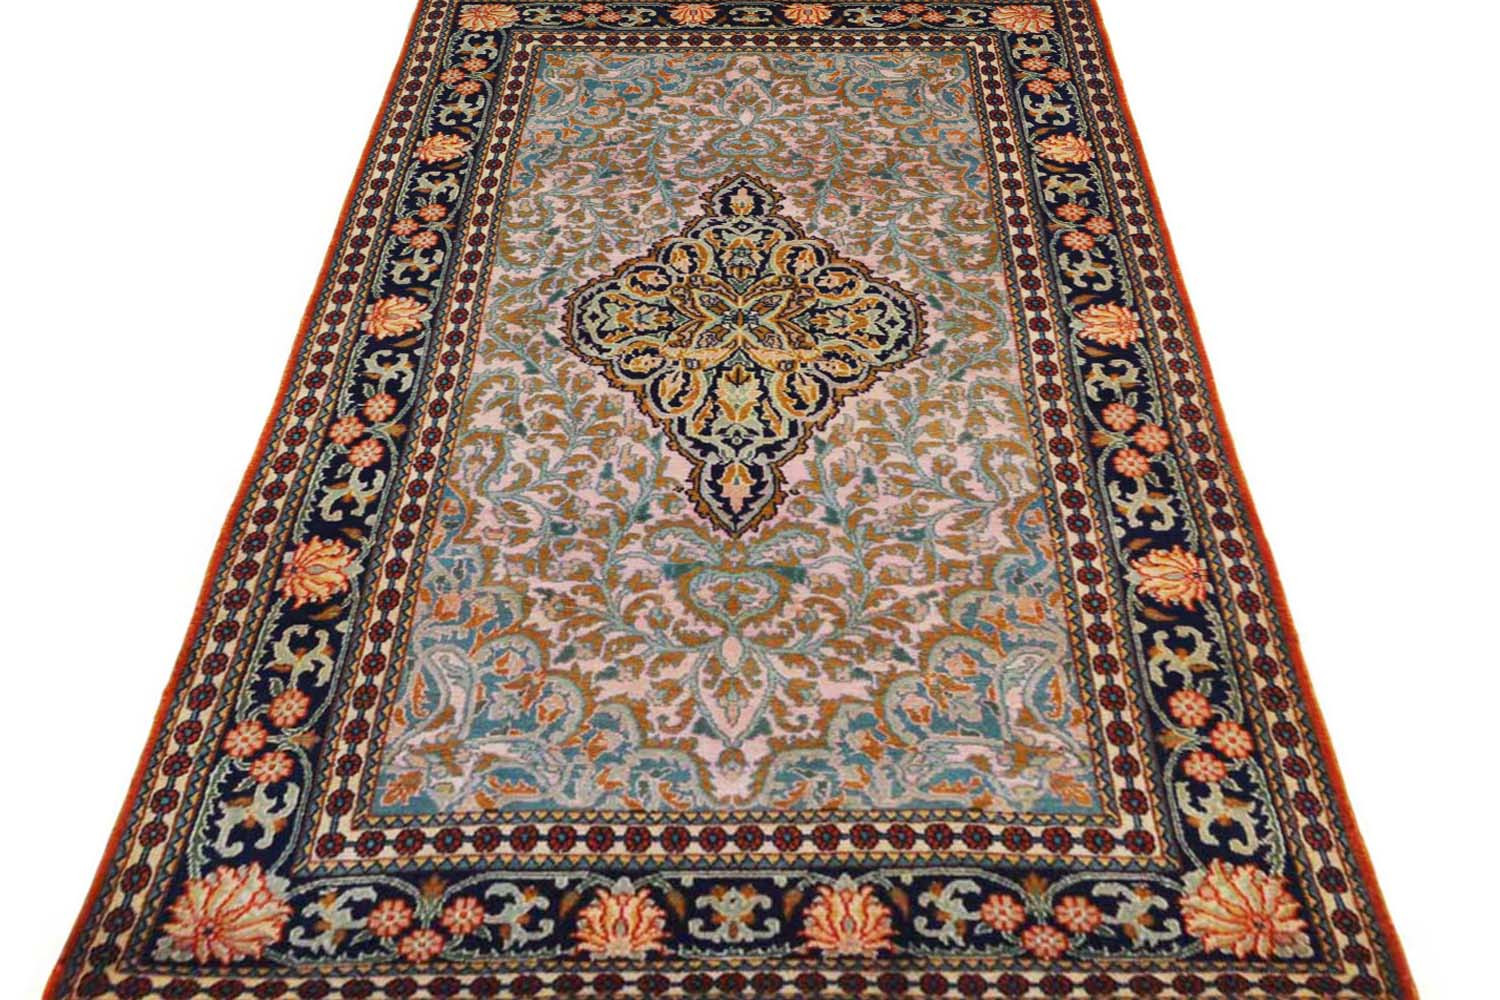 Teal Medallion Kashan Rug Buy Wool Rugs Online